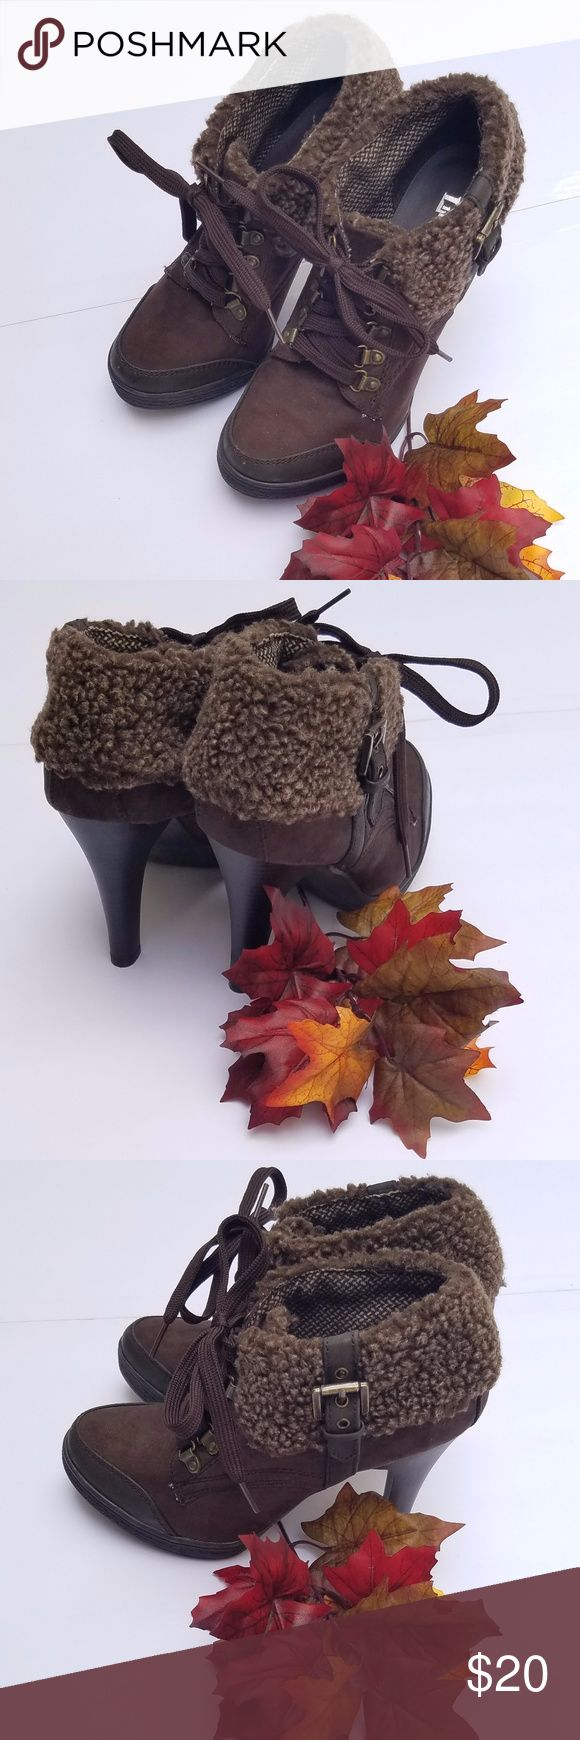 Limelight faux fur ankle boots Limelight faux fur ankle boots, brown suede lace up boot with heel, like new condition without tags. Limelight Shoes Ankle Boots & Booties